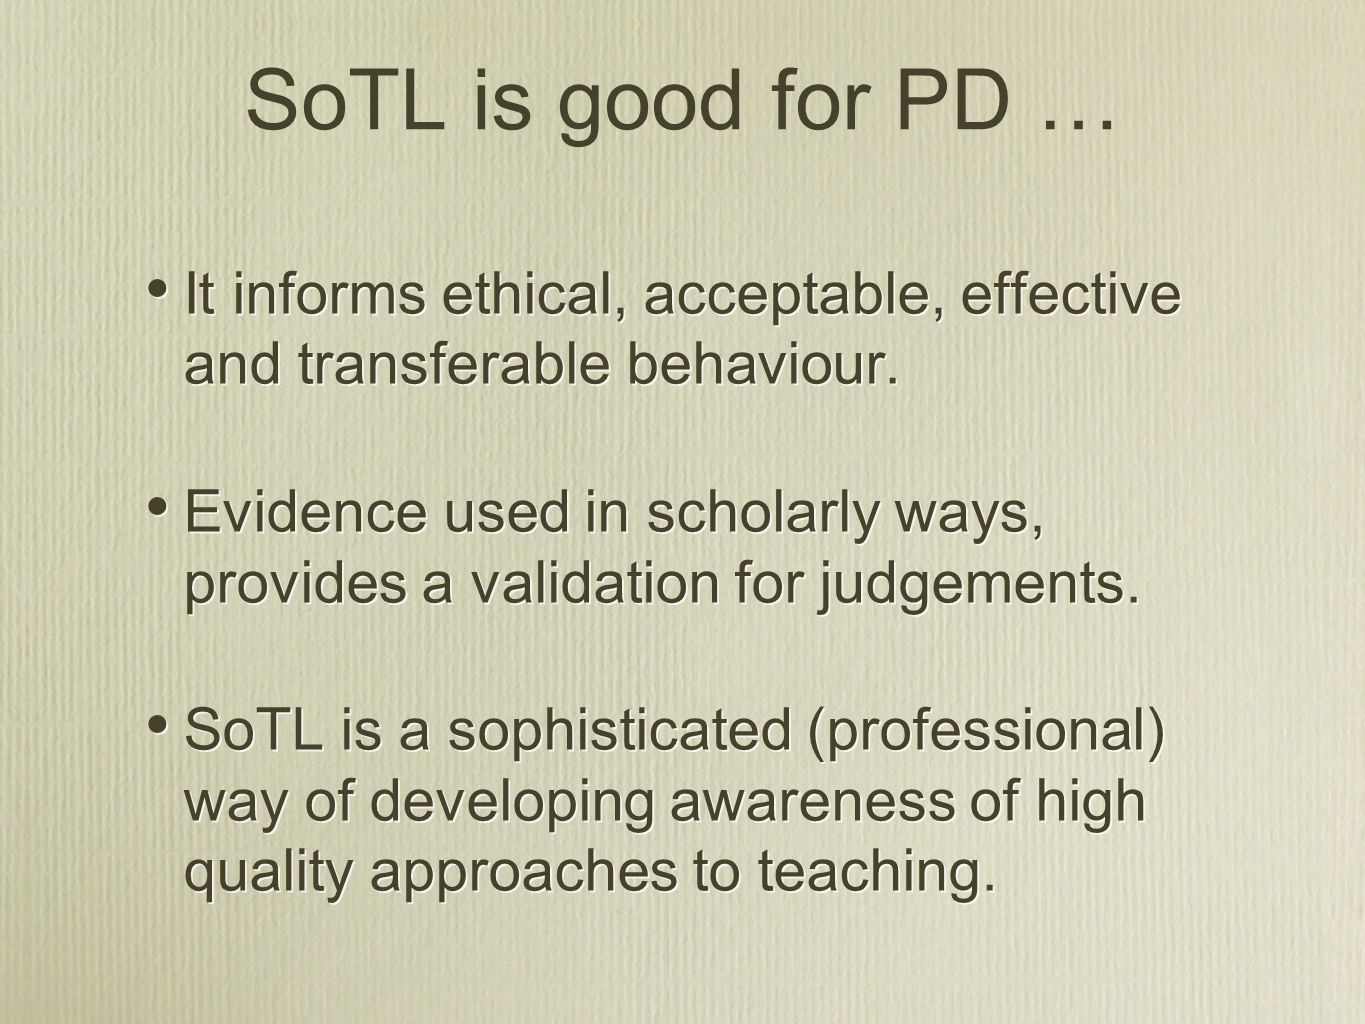 SoTL is good for PD …It informs ethical, acceptable, effective and transferable behaviour.